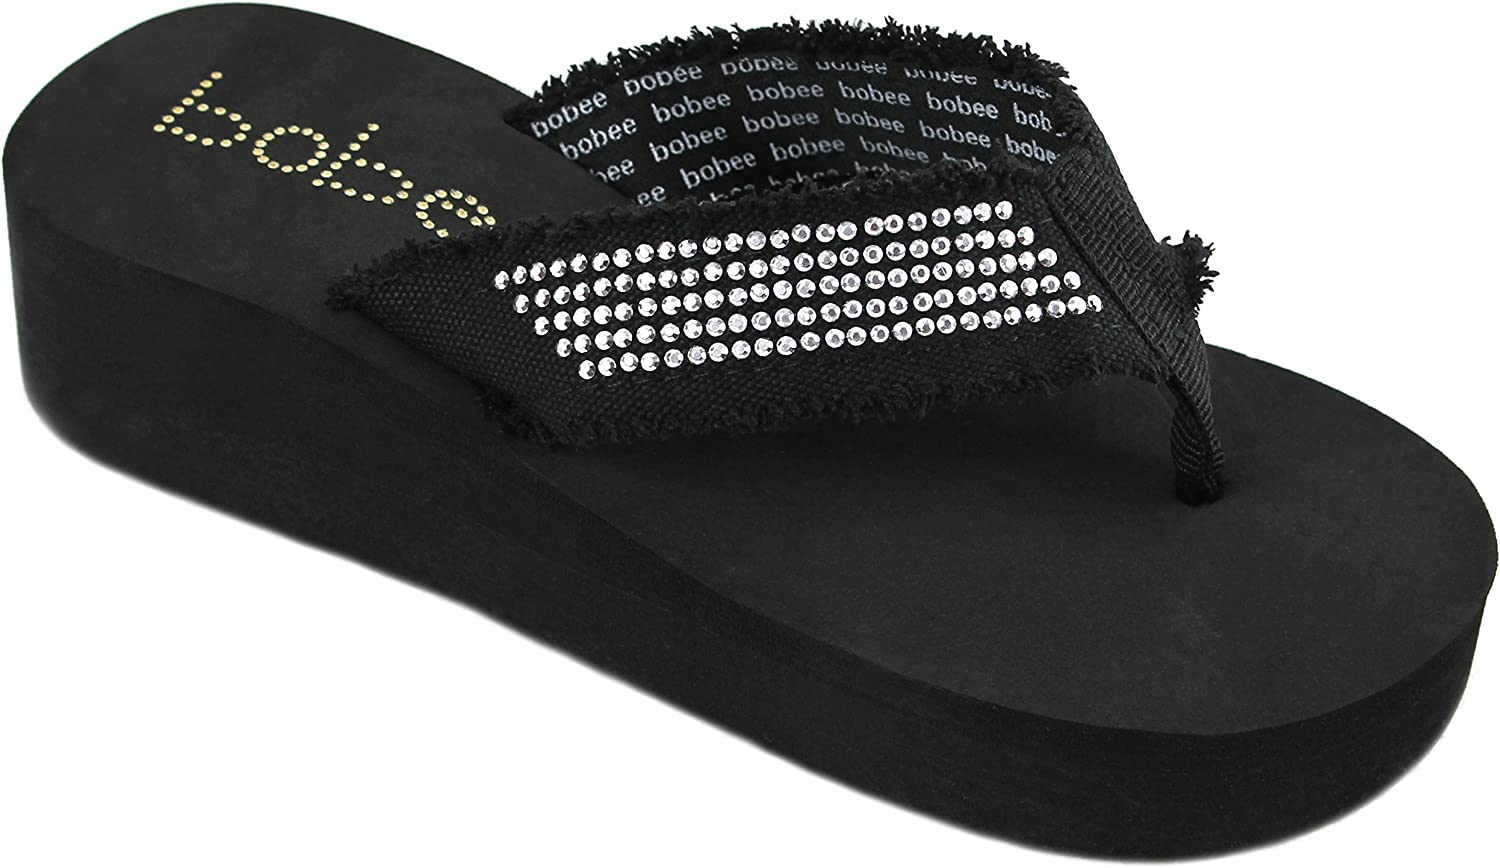 Women's Fashion Platform Wedge Thong Flip Flops Sandals (10, Black)